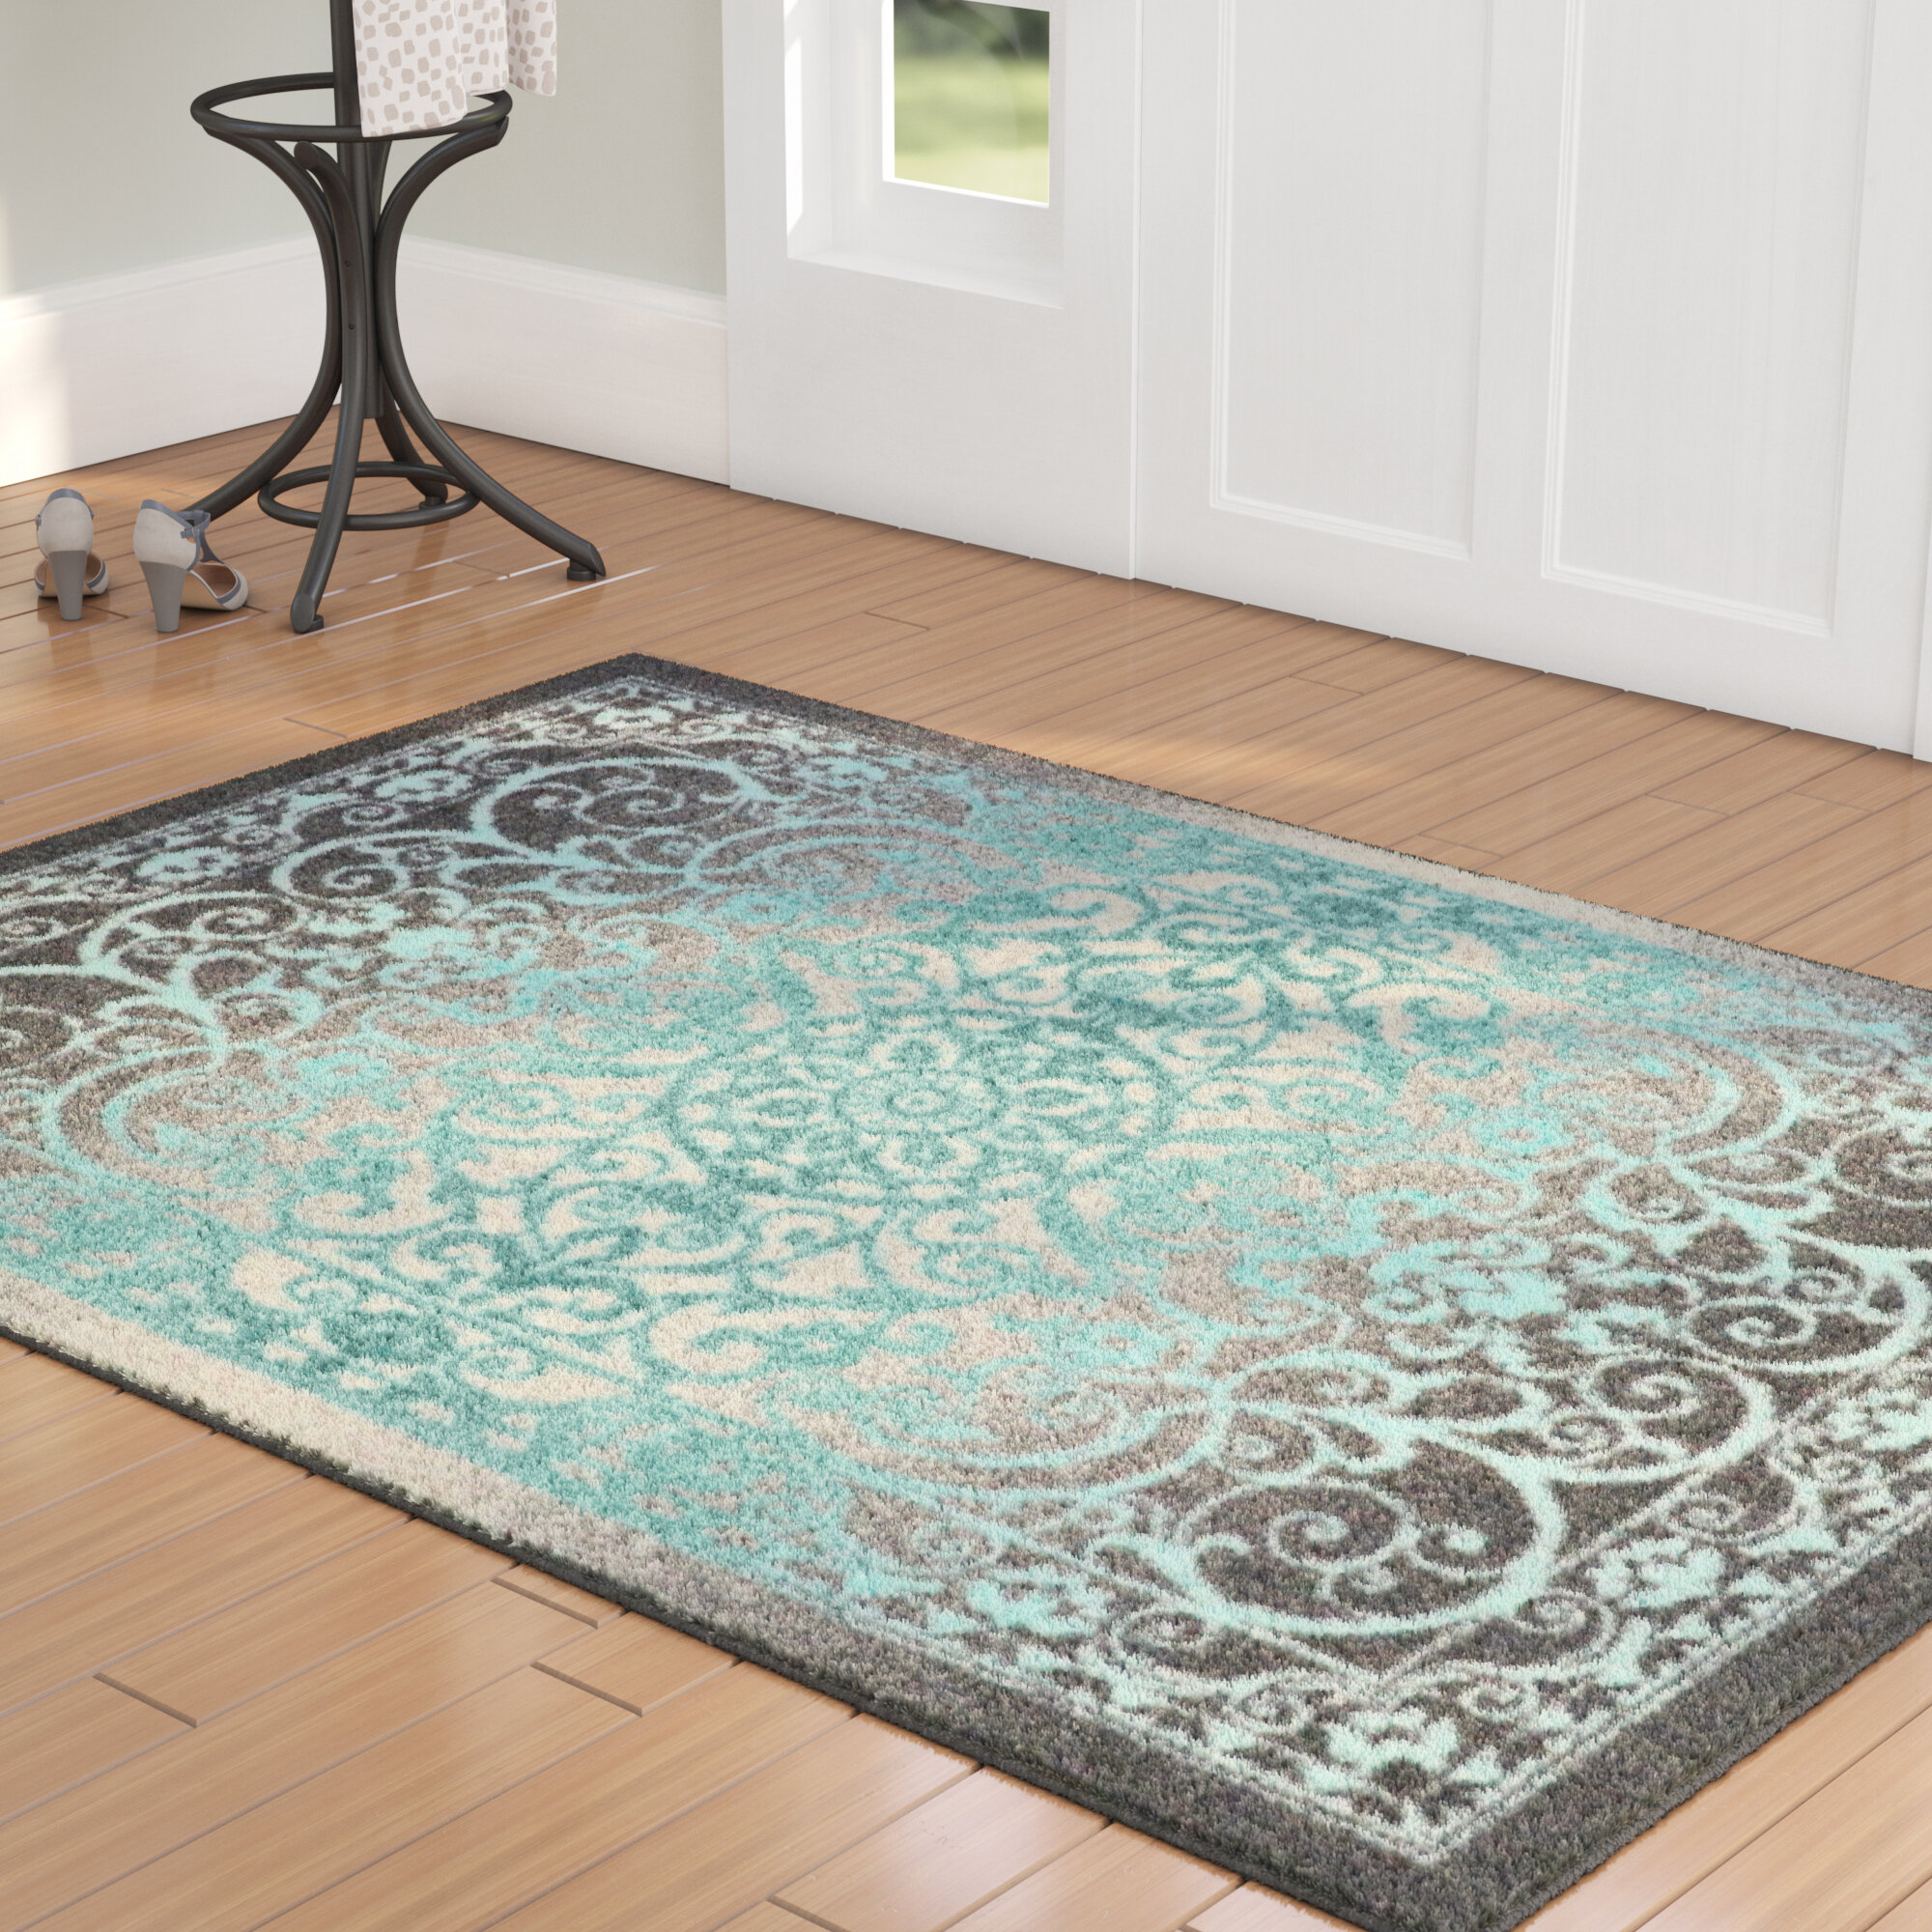 Cheap Big Area Rugs Area Rug Ideas